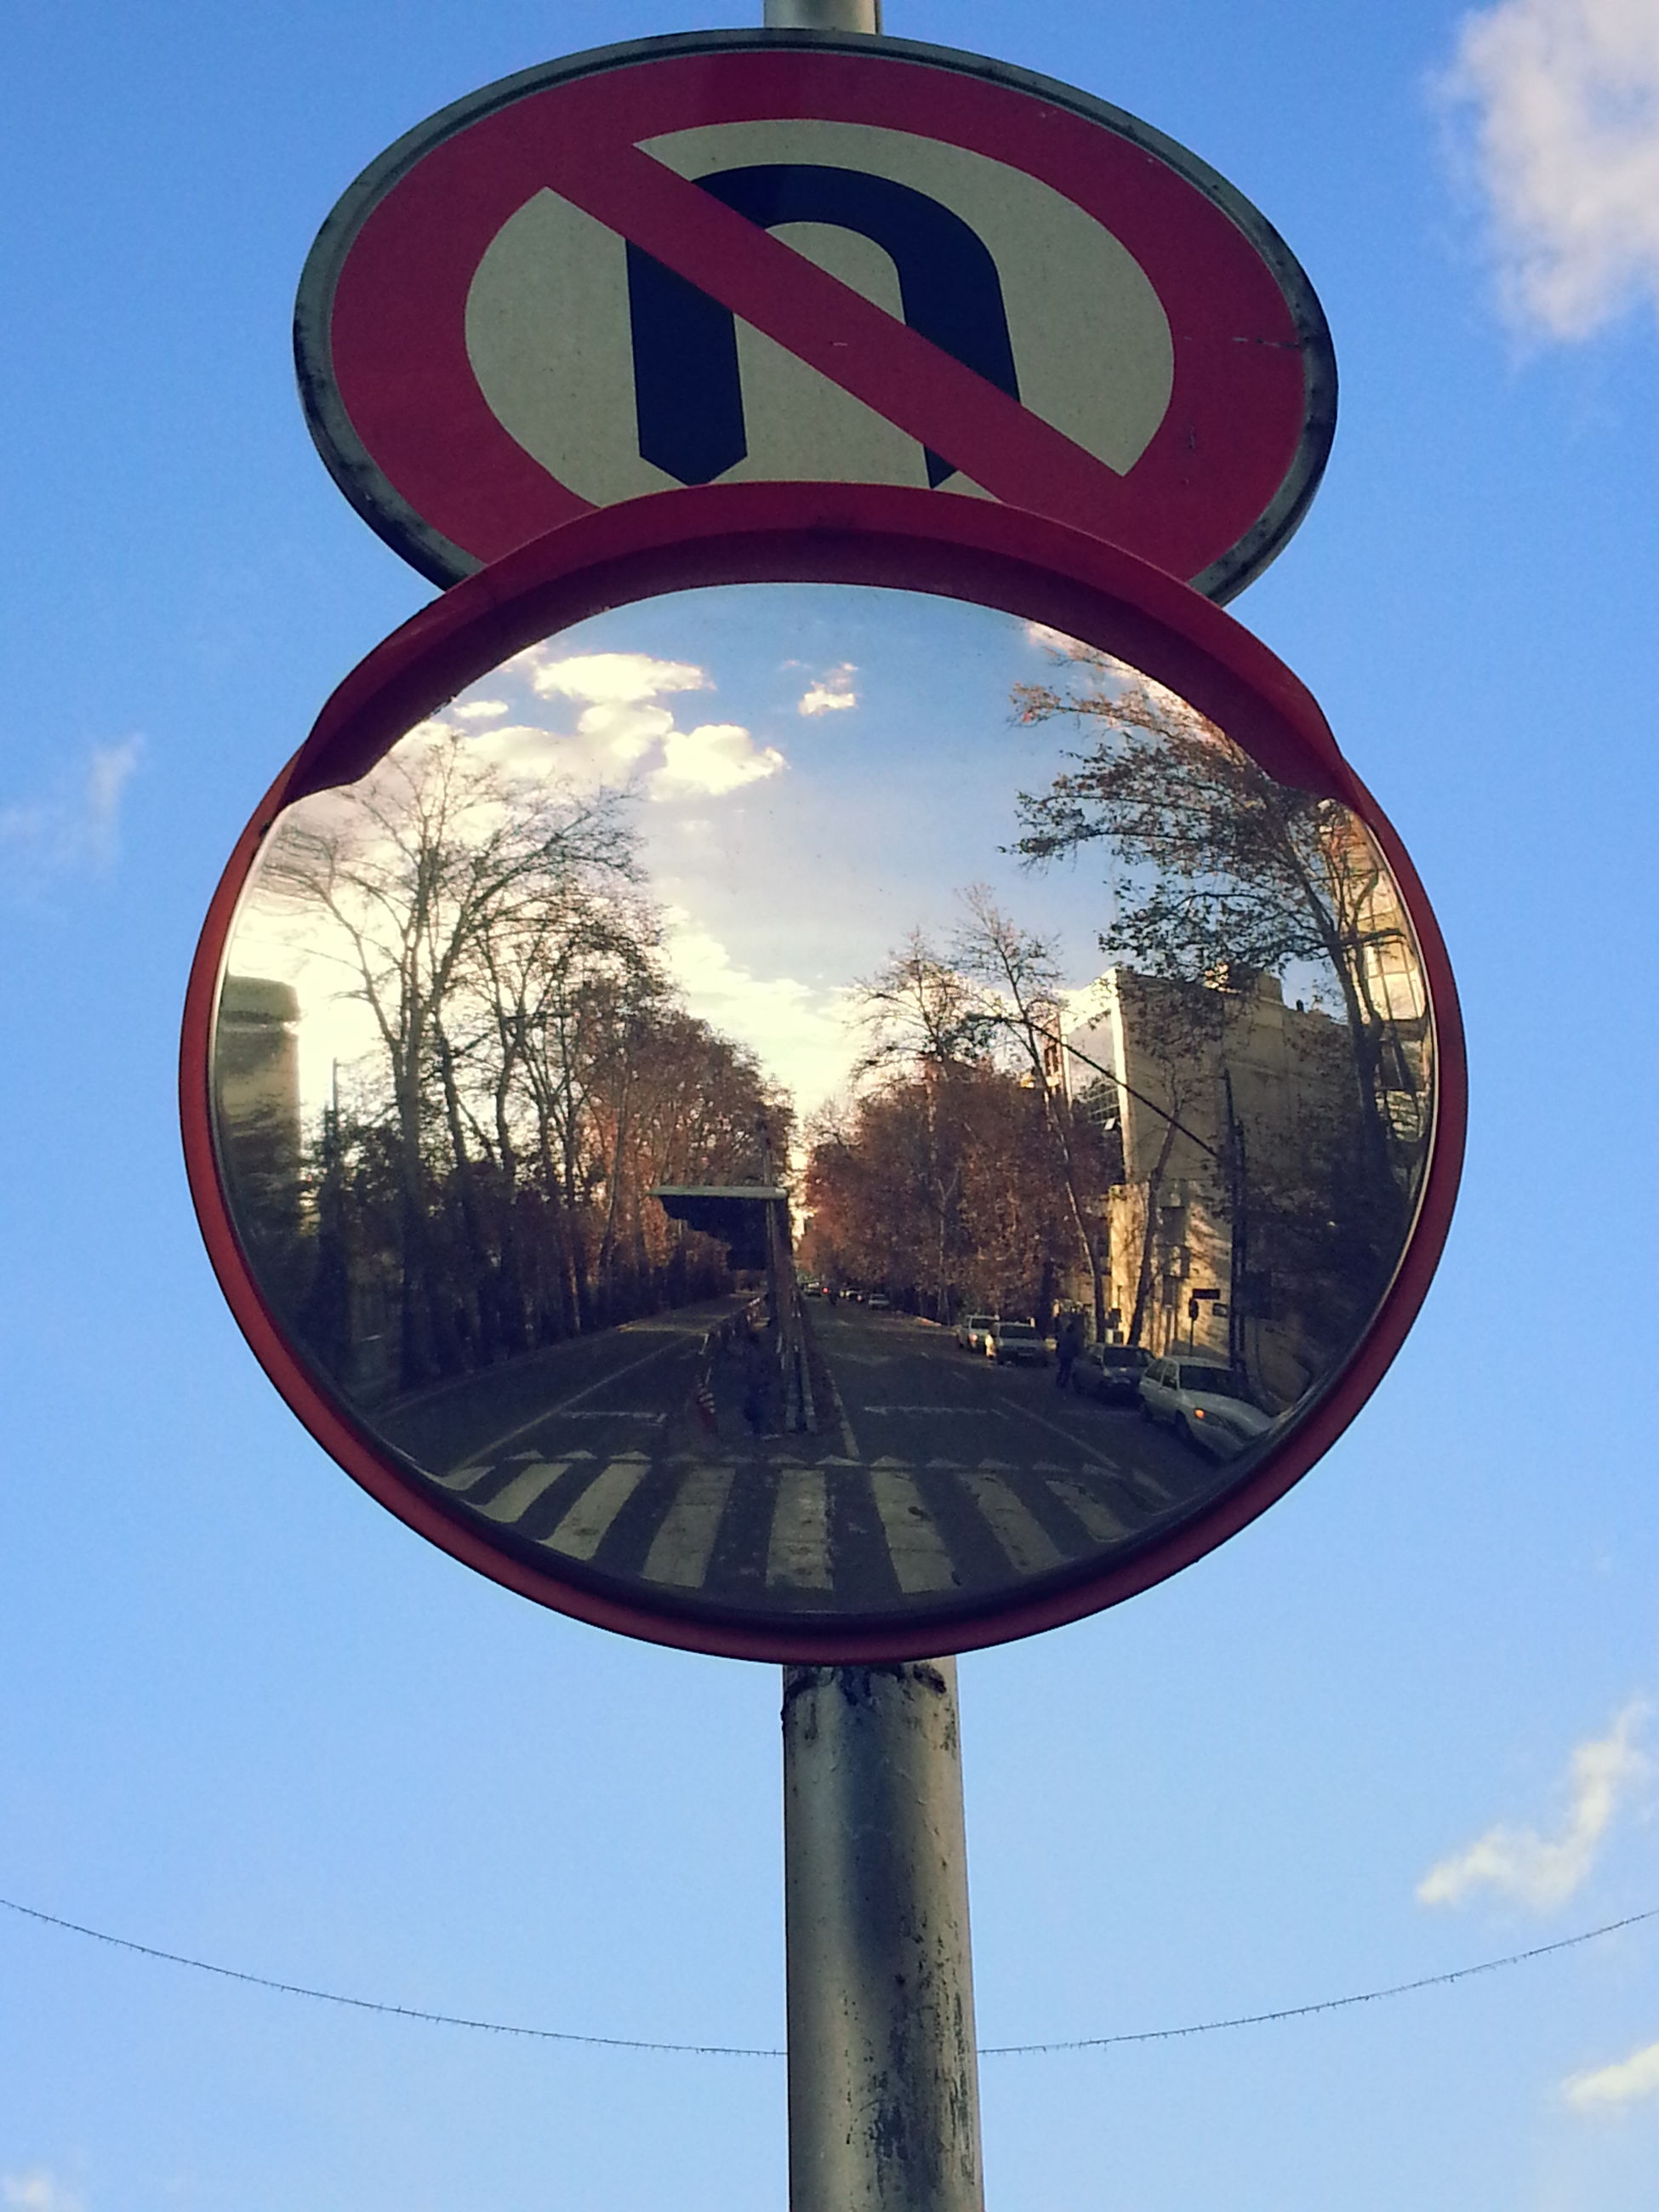 sky, circle, reflection, tree, transportation, cloud - sky, cloud, geometric shape, side-view mirror, day, round, outdoors, blue, no people, wheel, mirror, metal, built structure, field, close-up